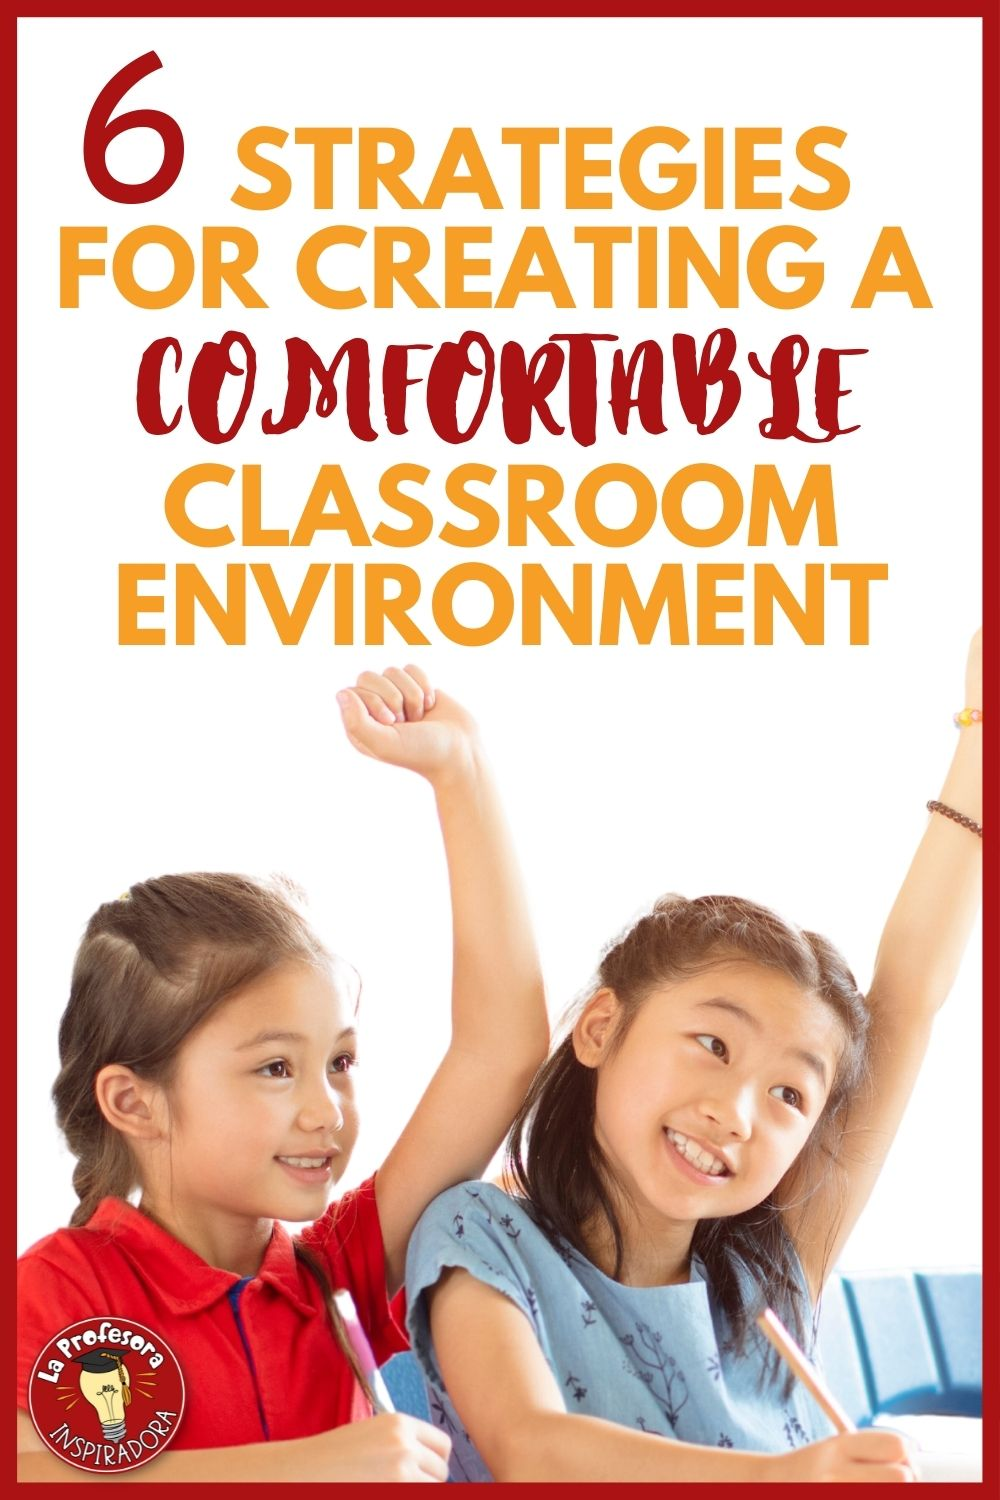 Featured image for post on strategies for creating a comfortable environment in the classroom